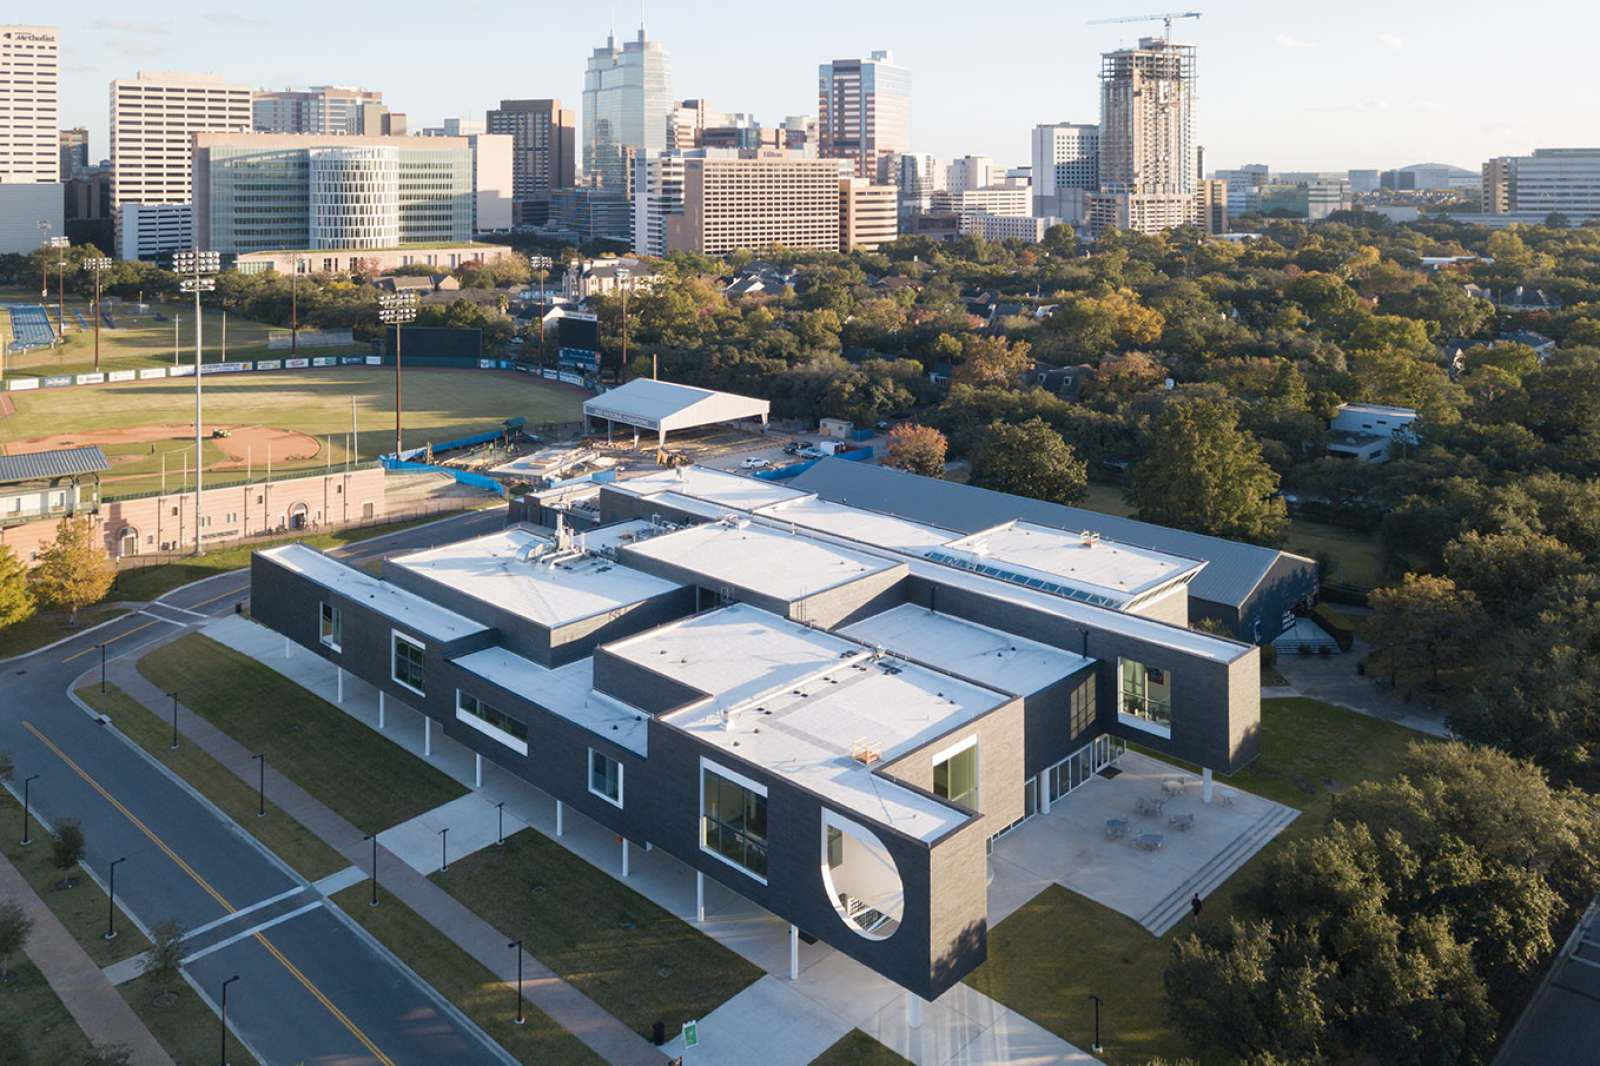 Moody Center for the Arts (aerial view). Photo: Iwan Baan